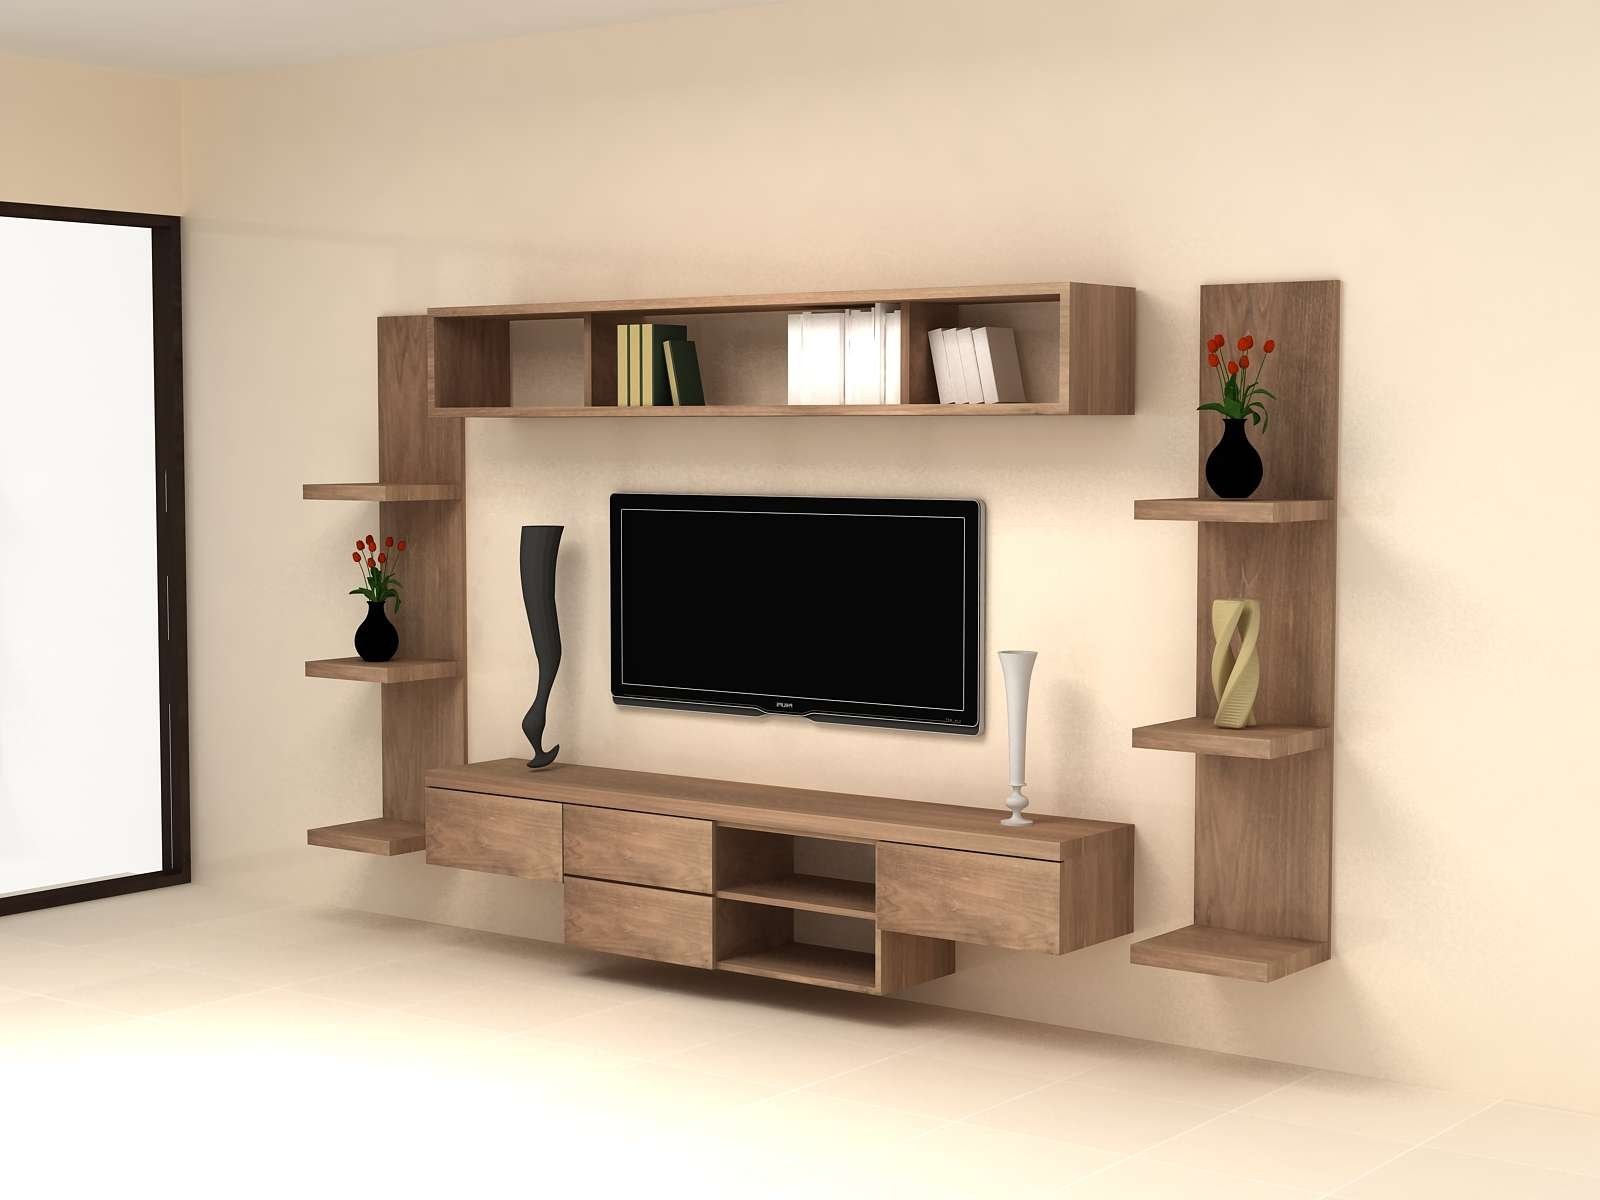 Living Room Tv Unit audidatlevantecom